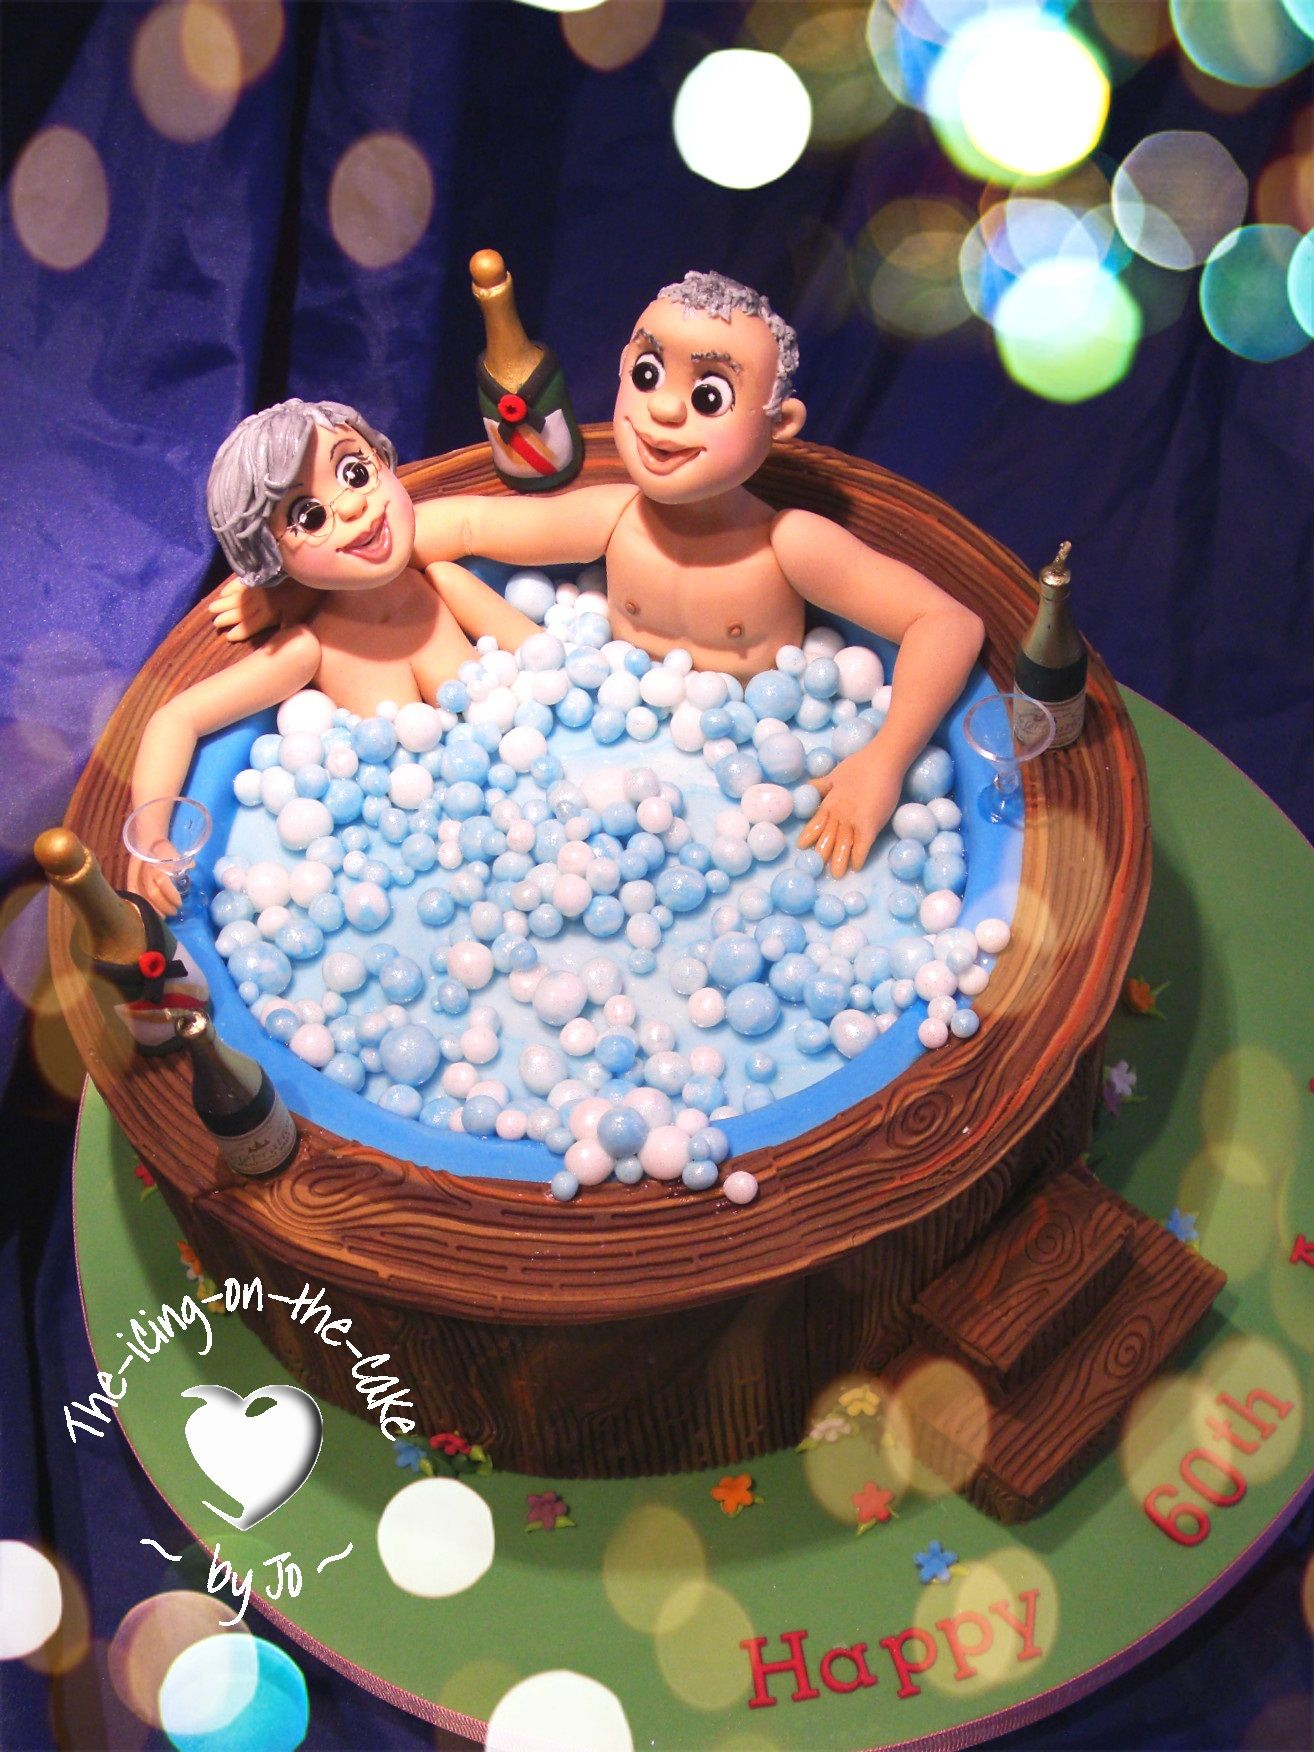 Hot Tub Cake Just Cool Spa Cake Pool Cake Pool Party Cakes